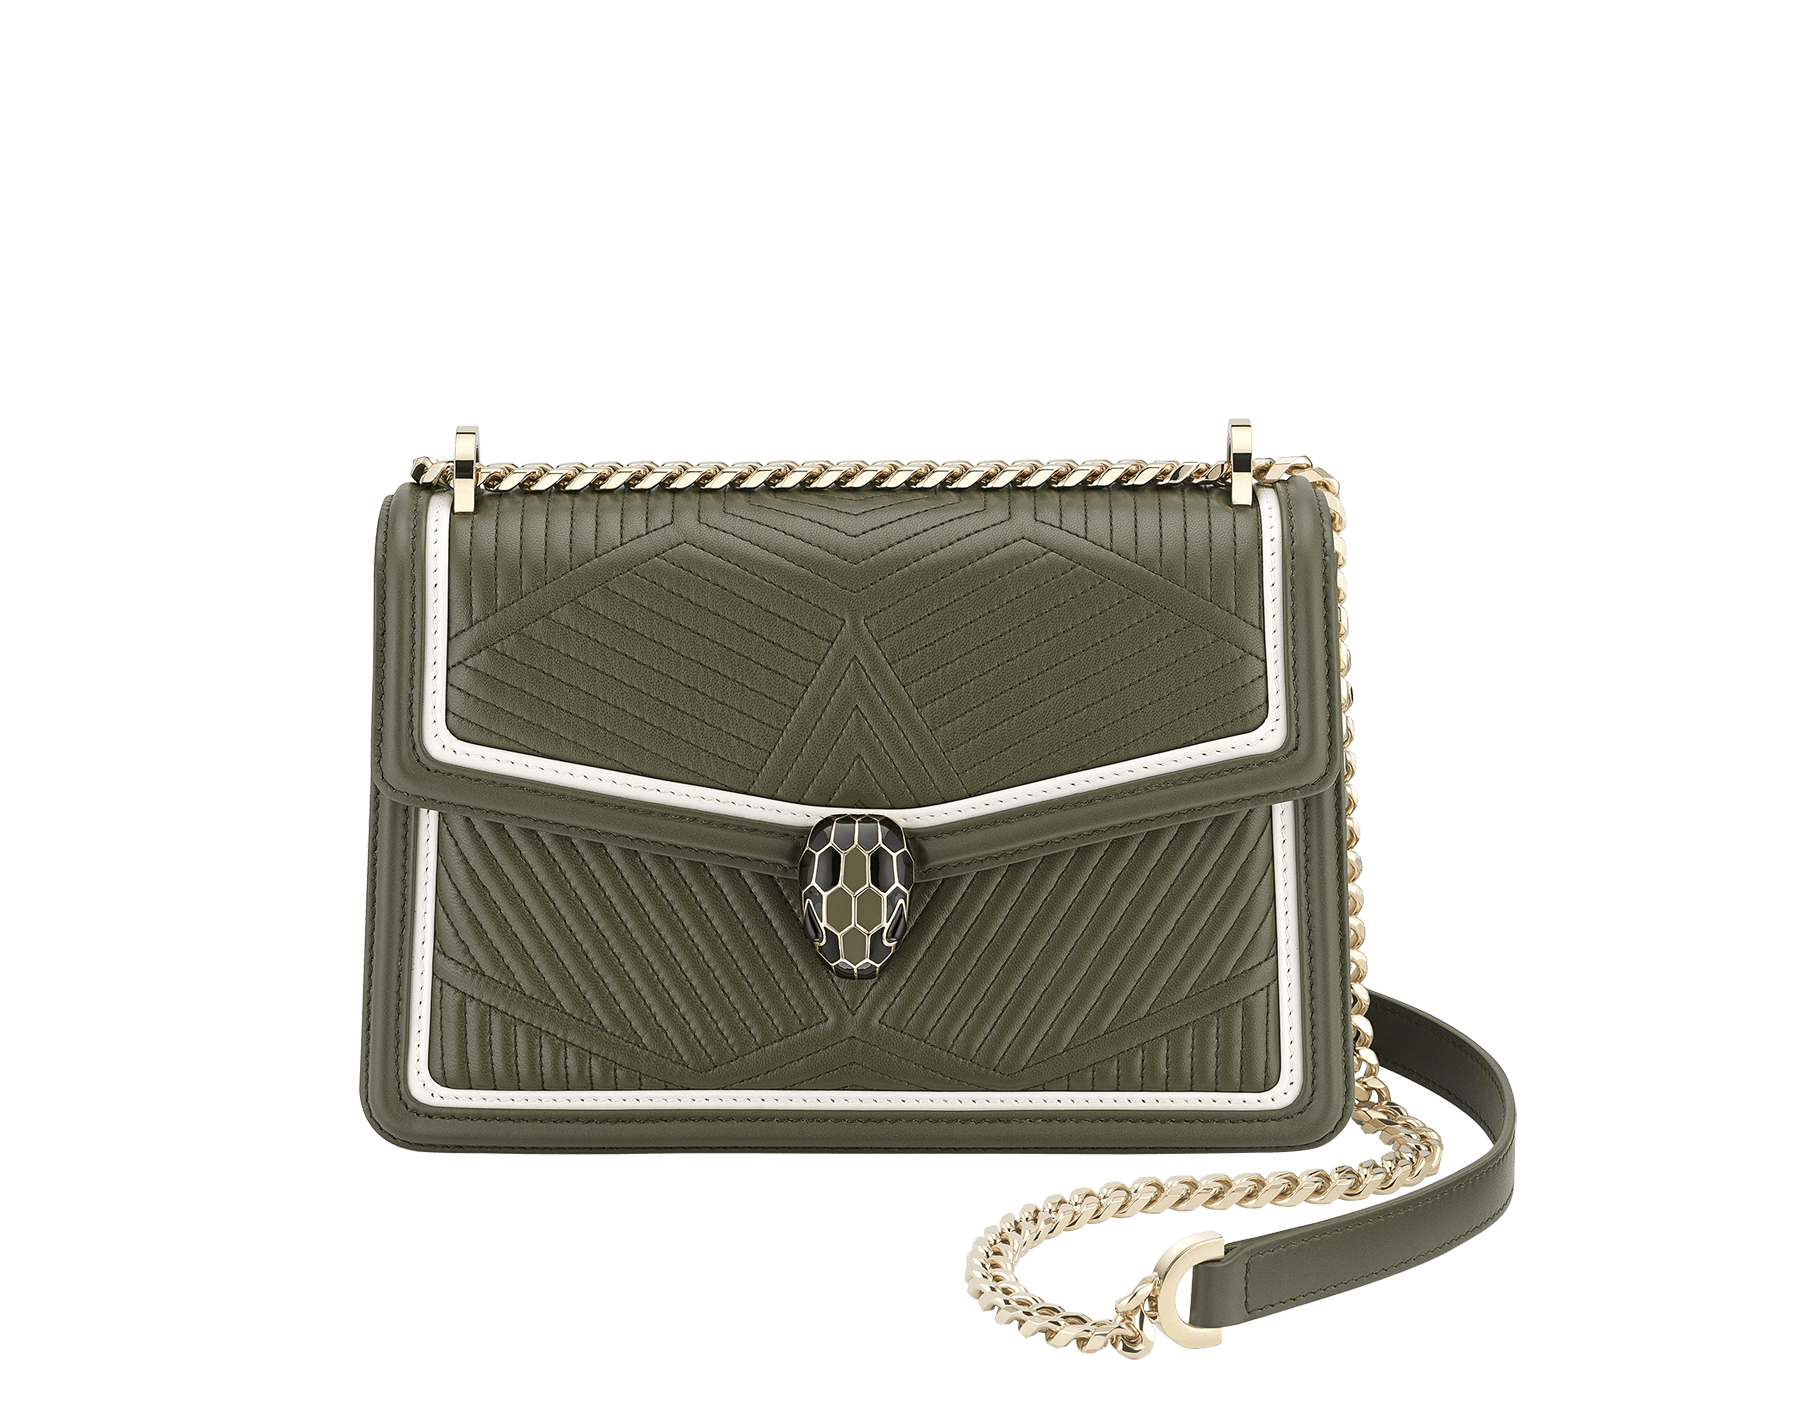 """Serpenti Diamond Blast"" shoulder bag in mimetic jade quilted nappa leather and mimetic jade smooth calf leather frames. Iconic snakehead closure in light gold plated brass enriched with matte black and shiny mimetic jade enamel and black onyx eyes. 922-FQDf image 1"